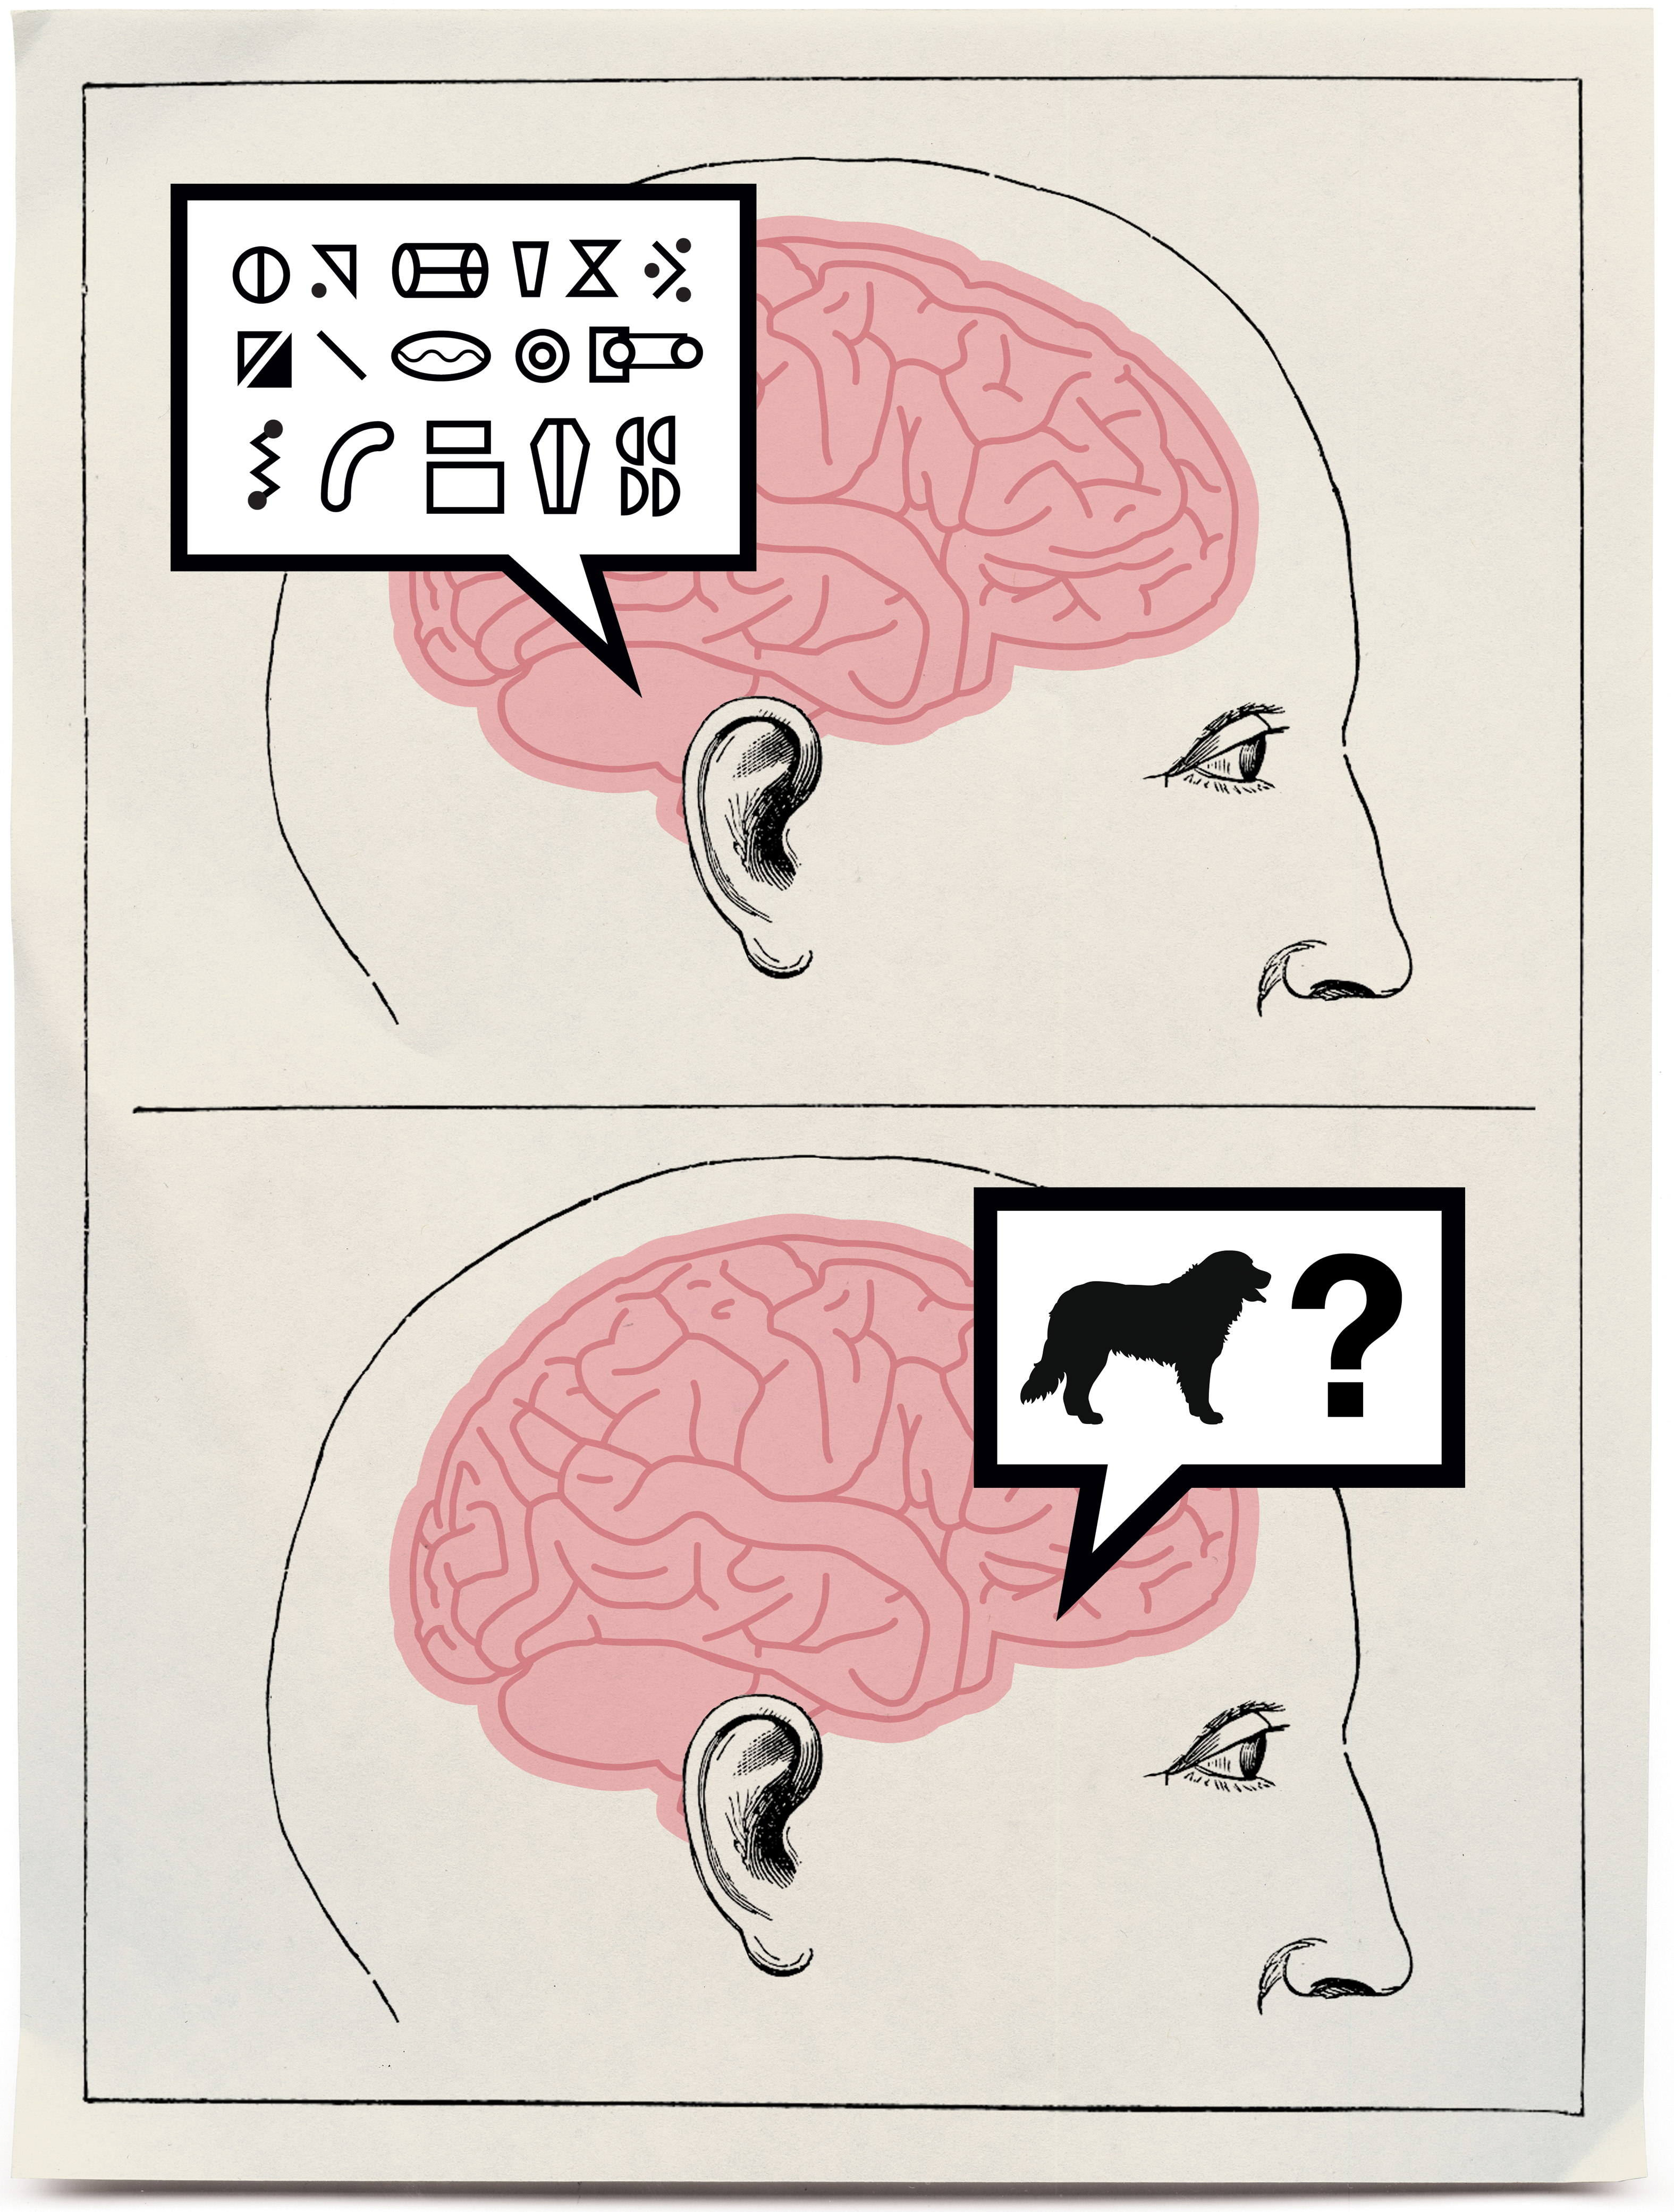 Cracking the Brain\'s Codes - MIT Technology Review